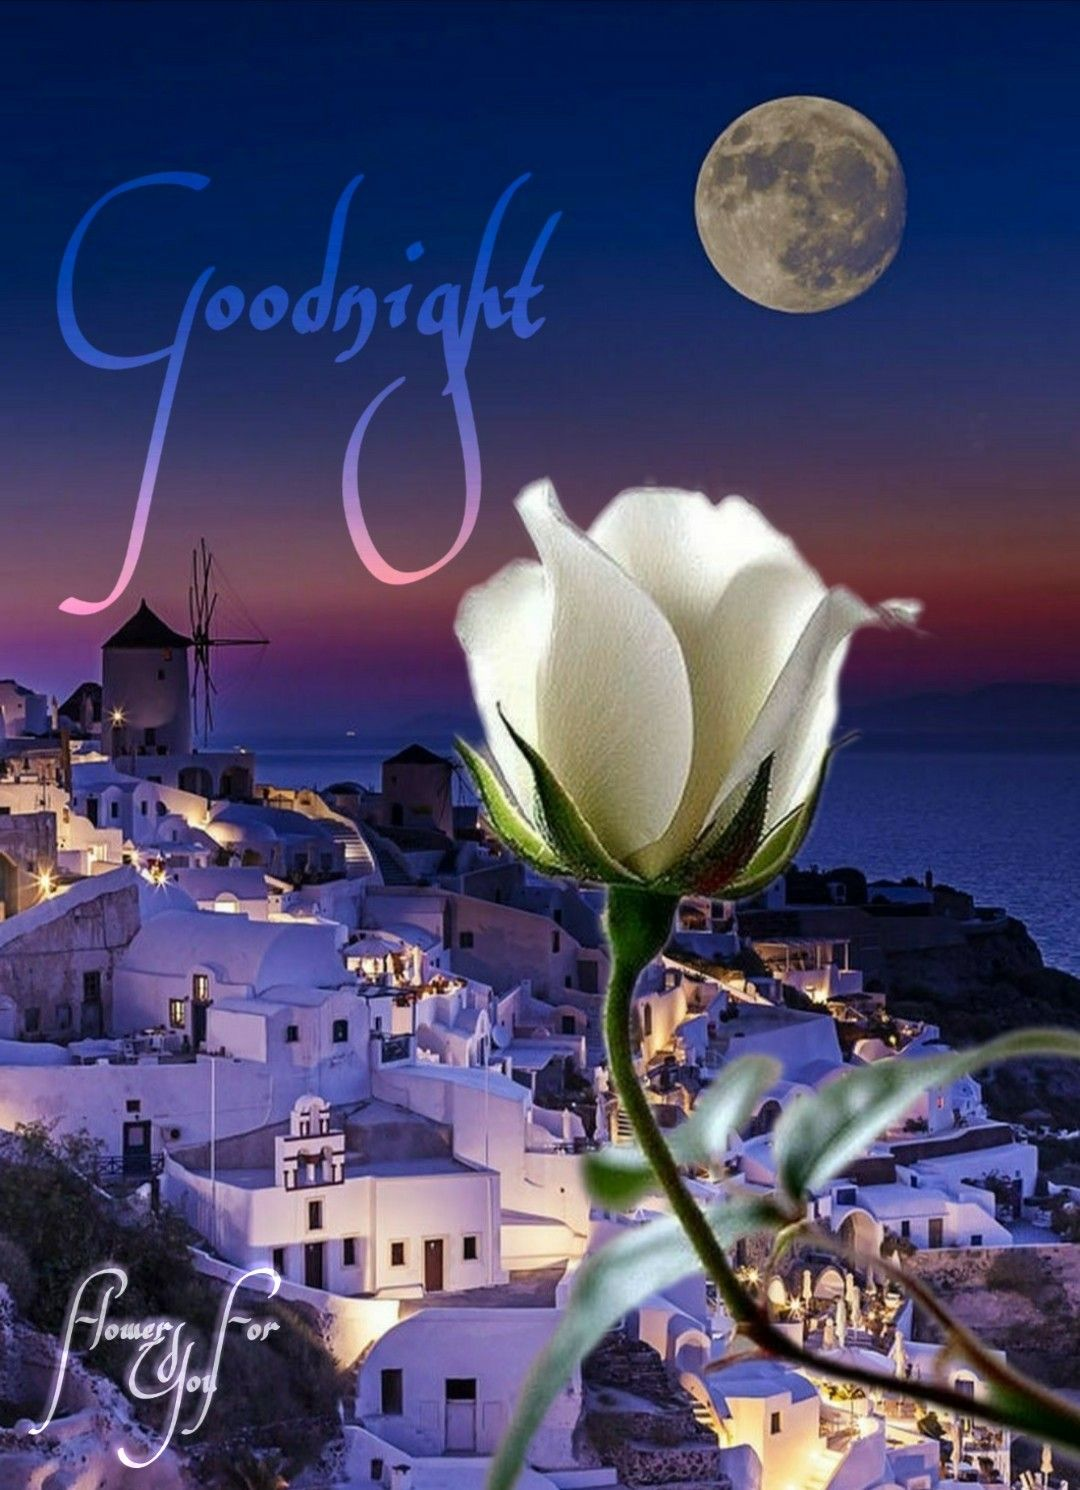 Link Buonanotte Goodnight Page Facebook Flowers For You Created By Tiziana Mosso Buonanotte Buona Notte Notte